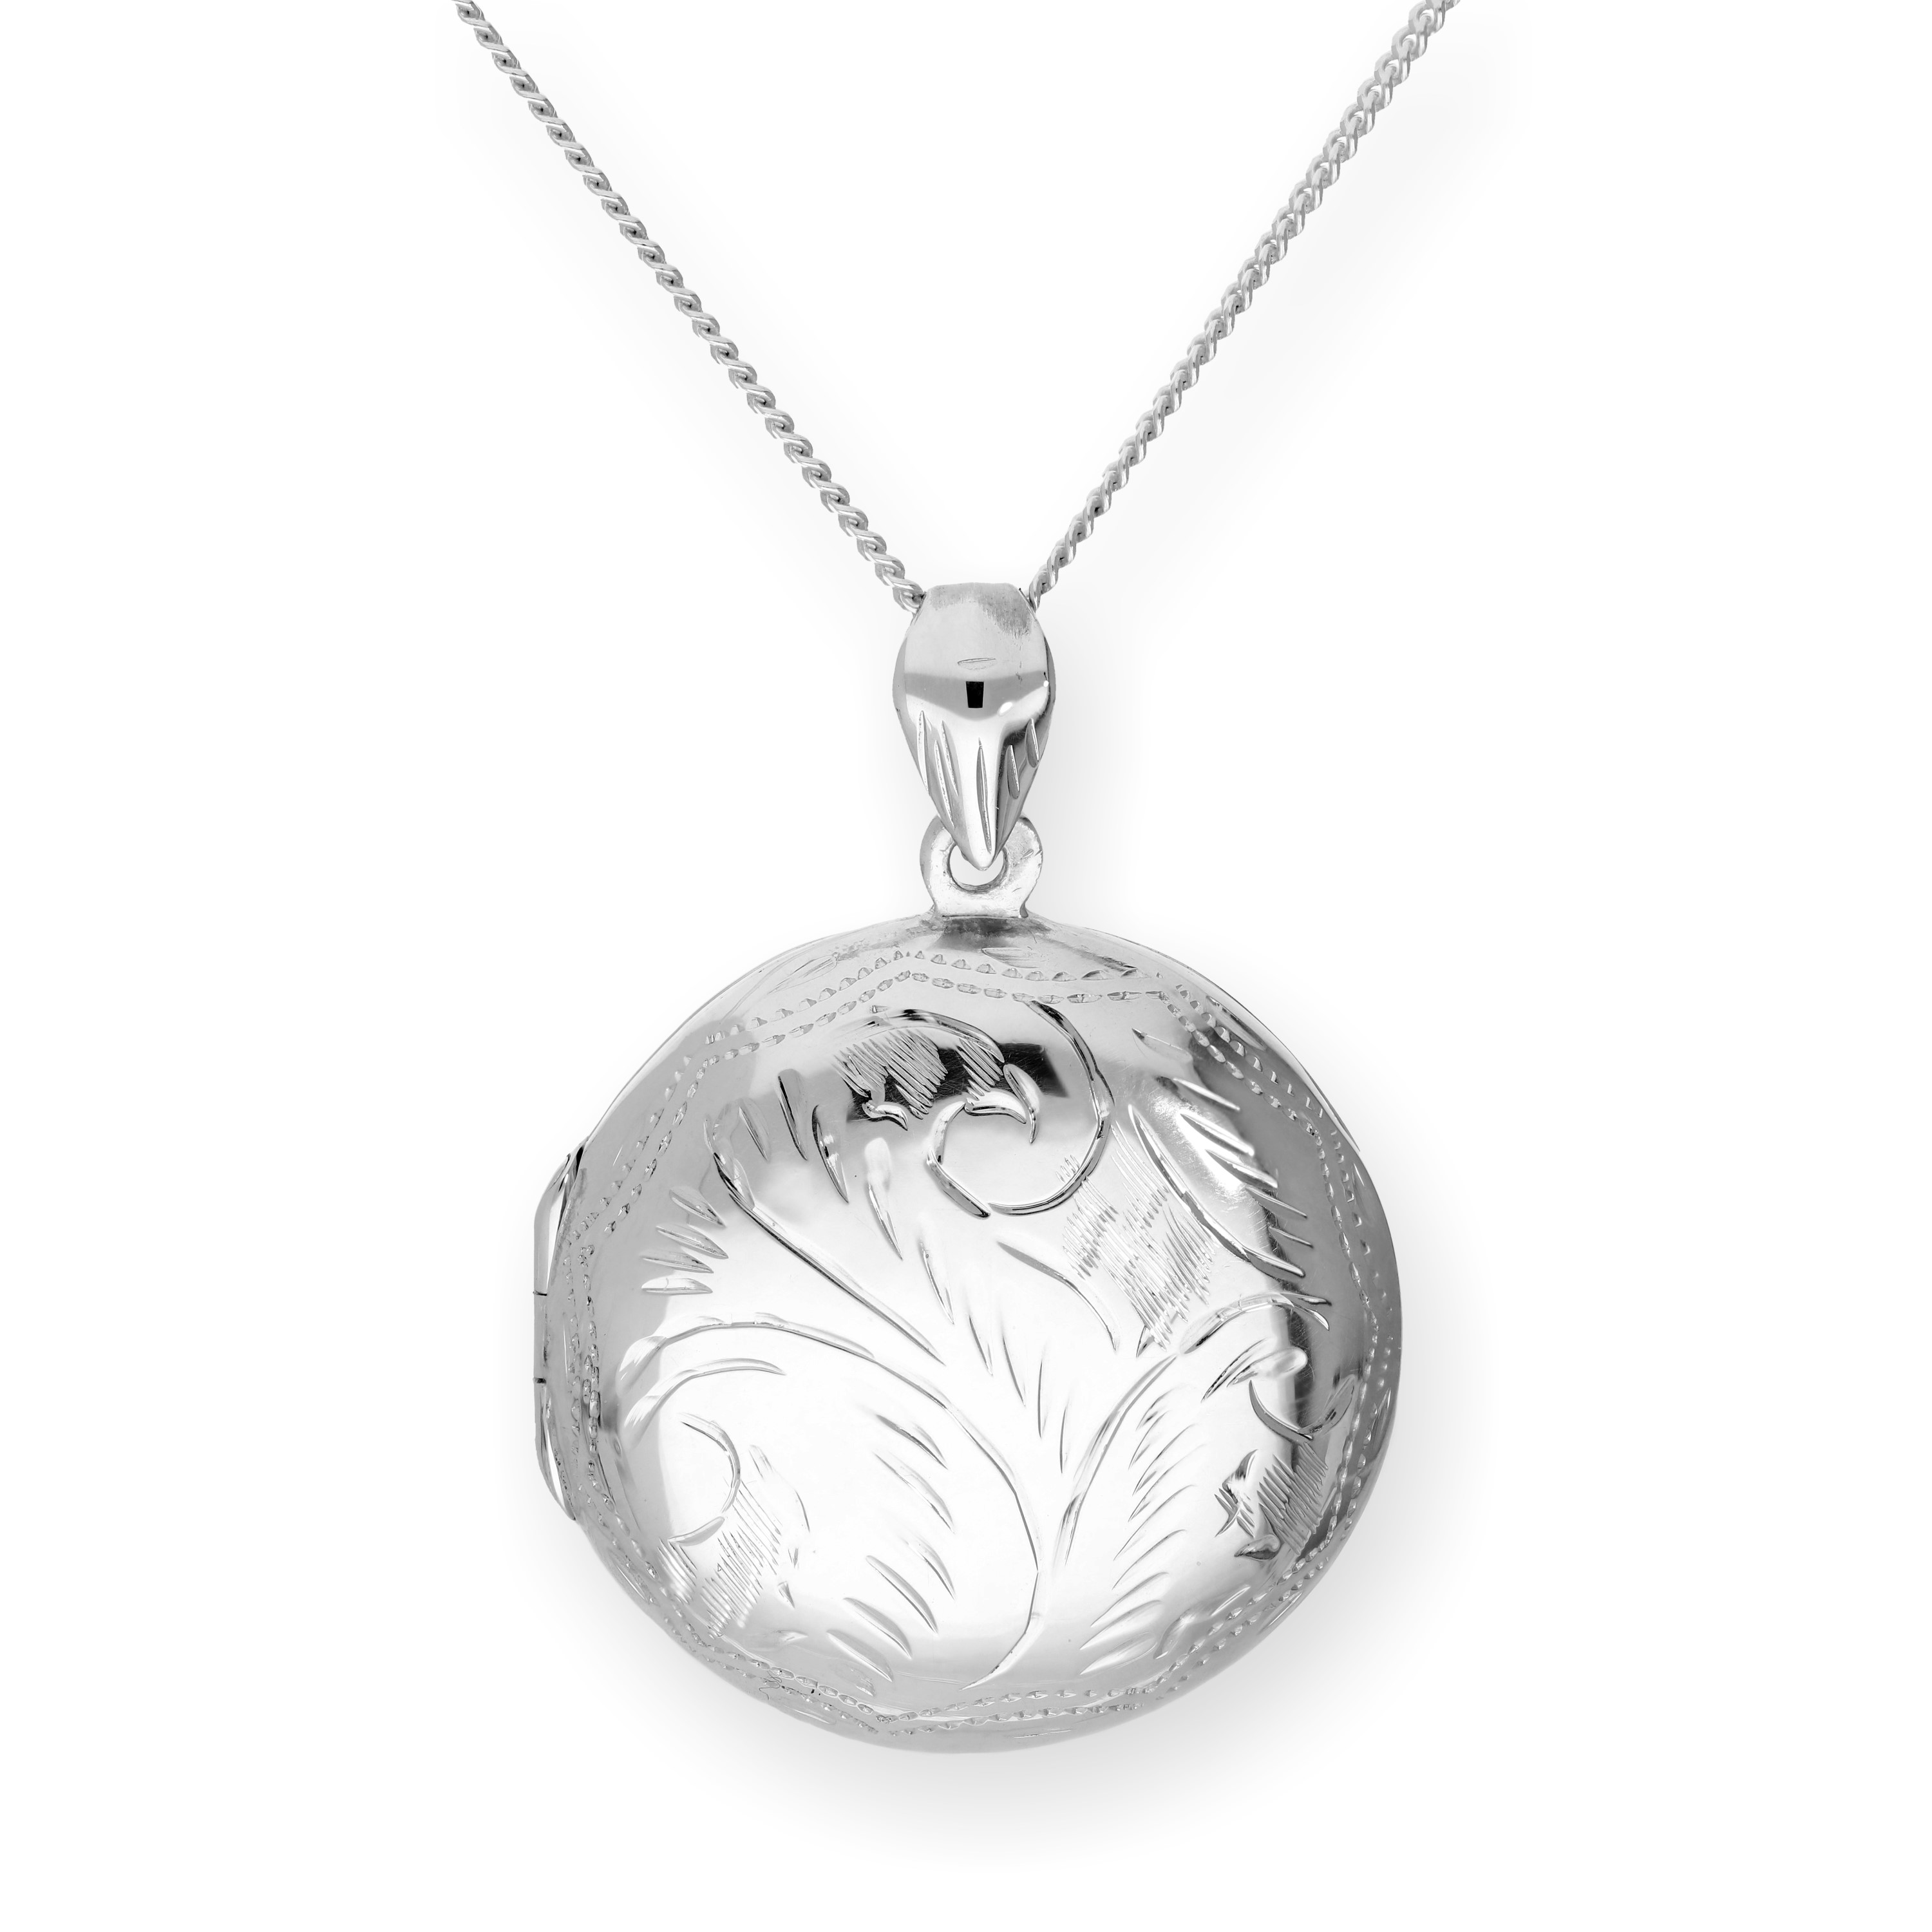 An image of Large Sterling Silver Engraved Round Locket on Chain 16 - 24 Inches